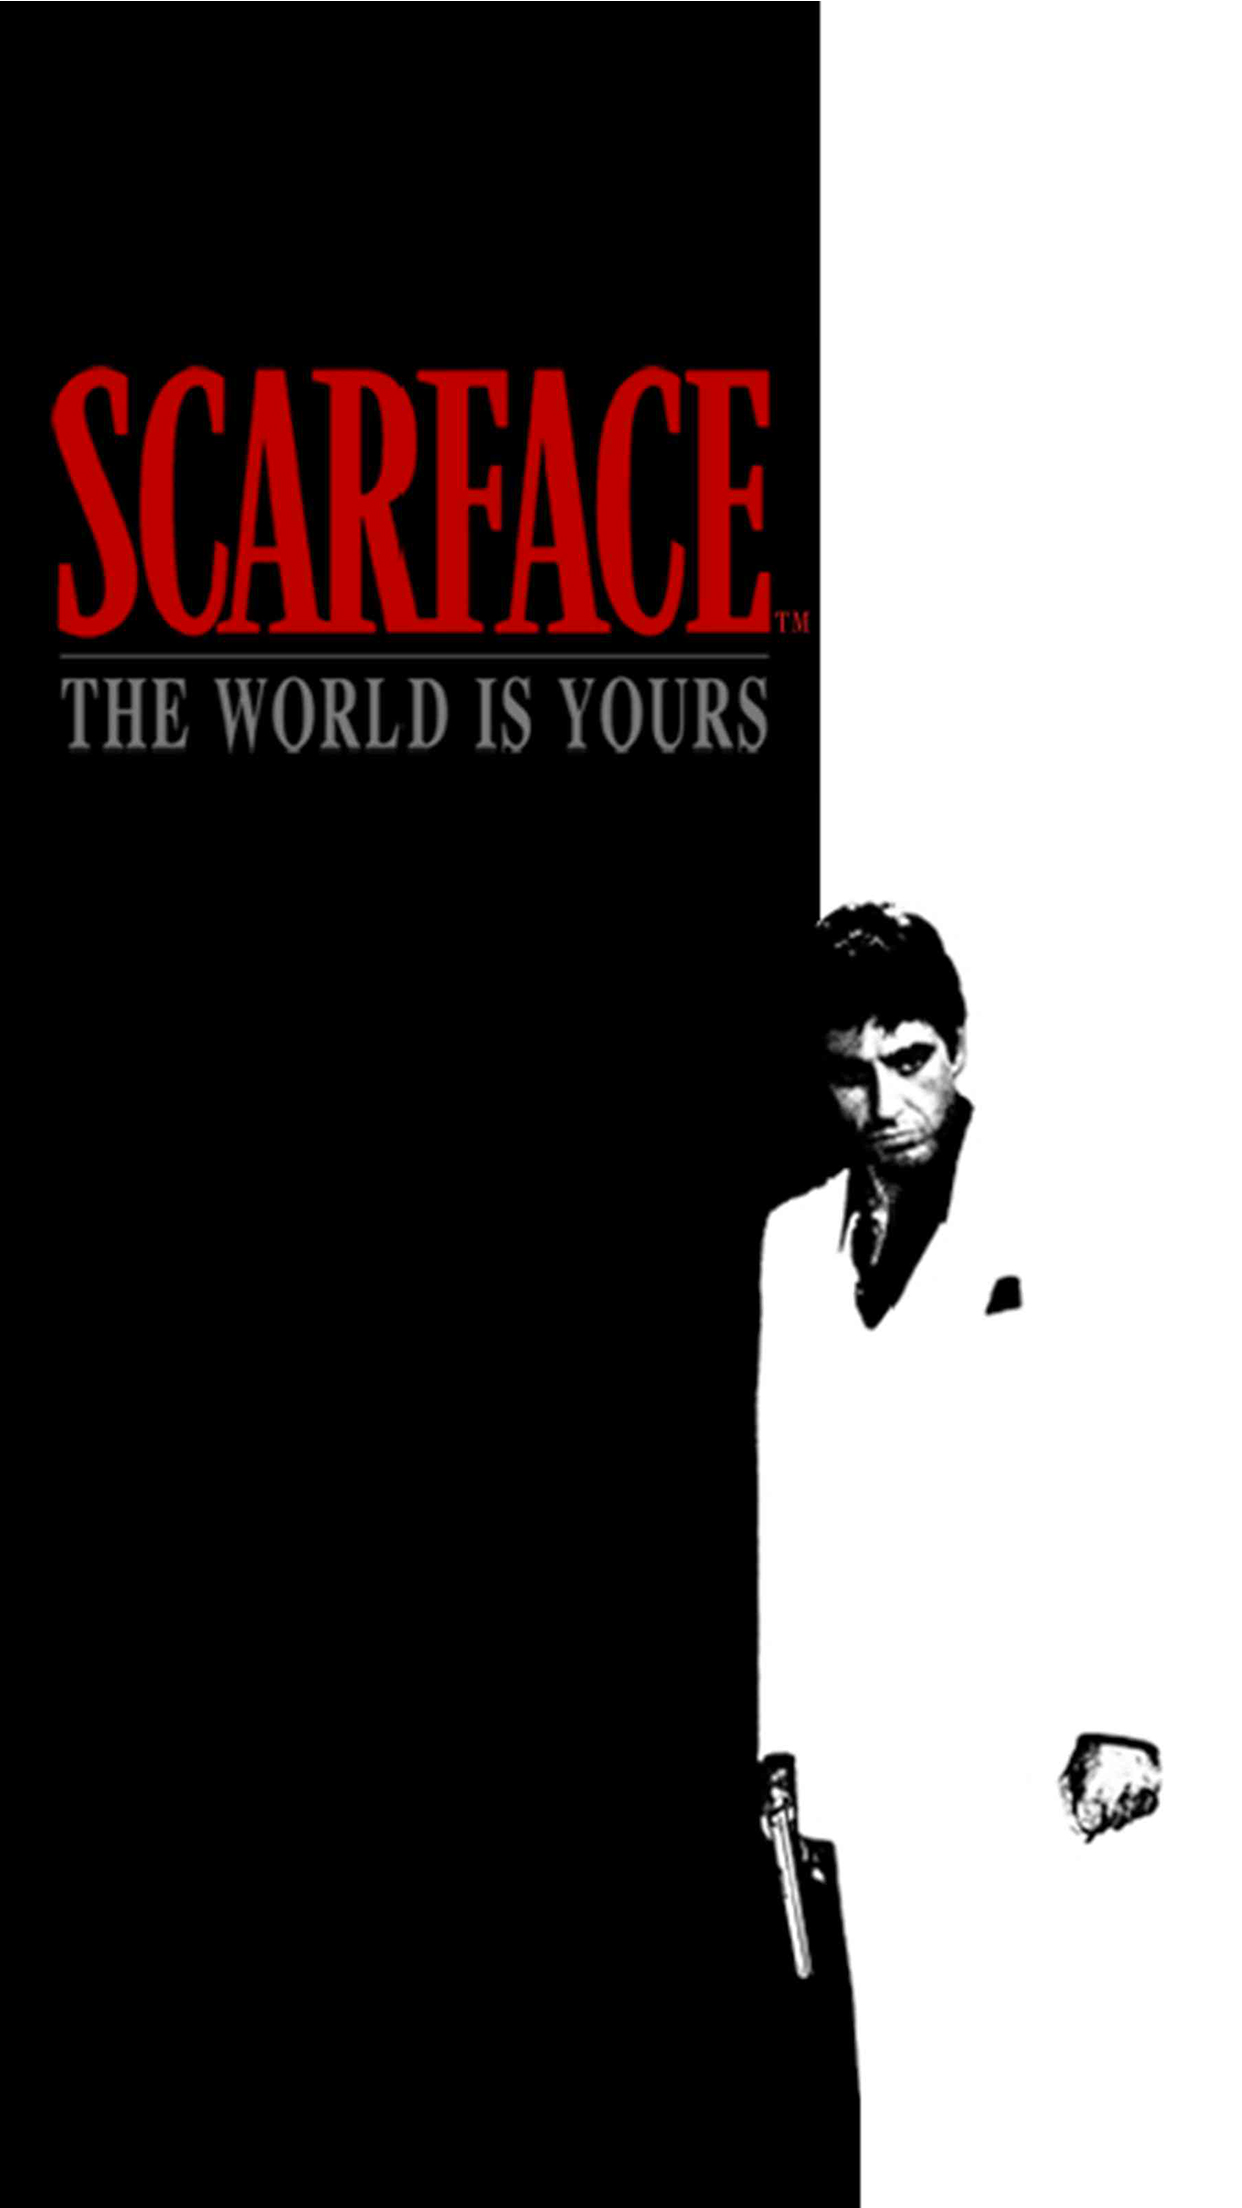 Scarface wallpaper for iphone x 8 7 6 free download - Scarface wallpaper iphone ...